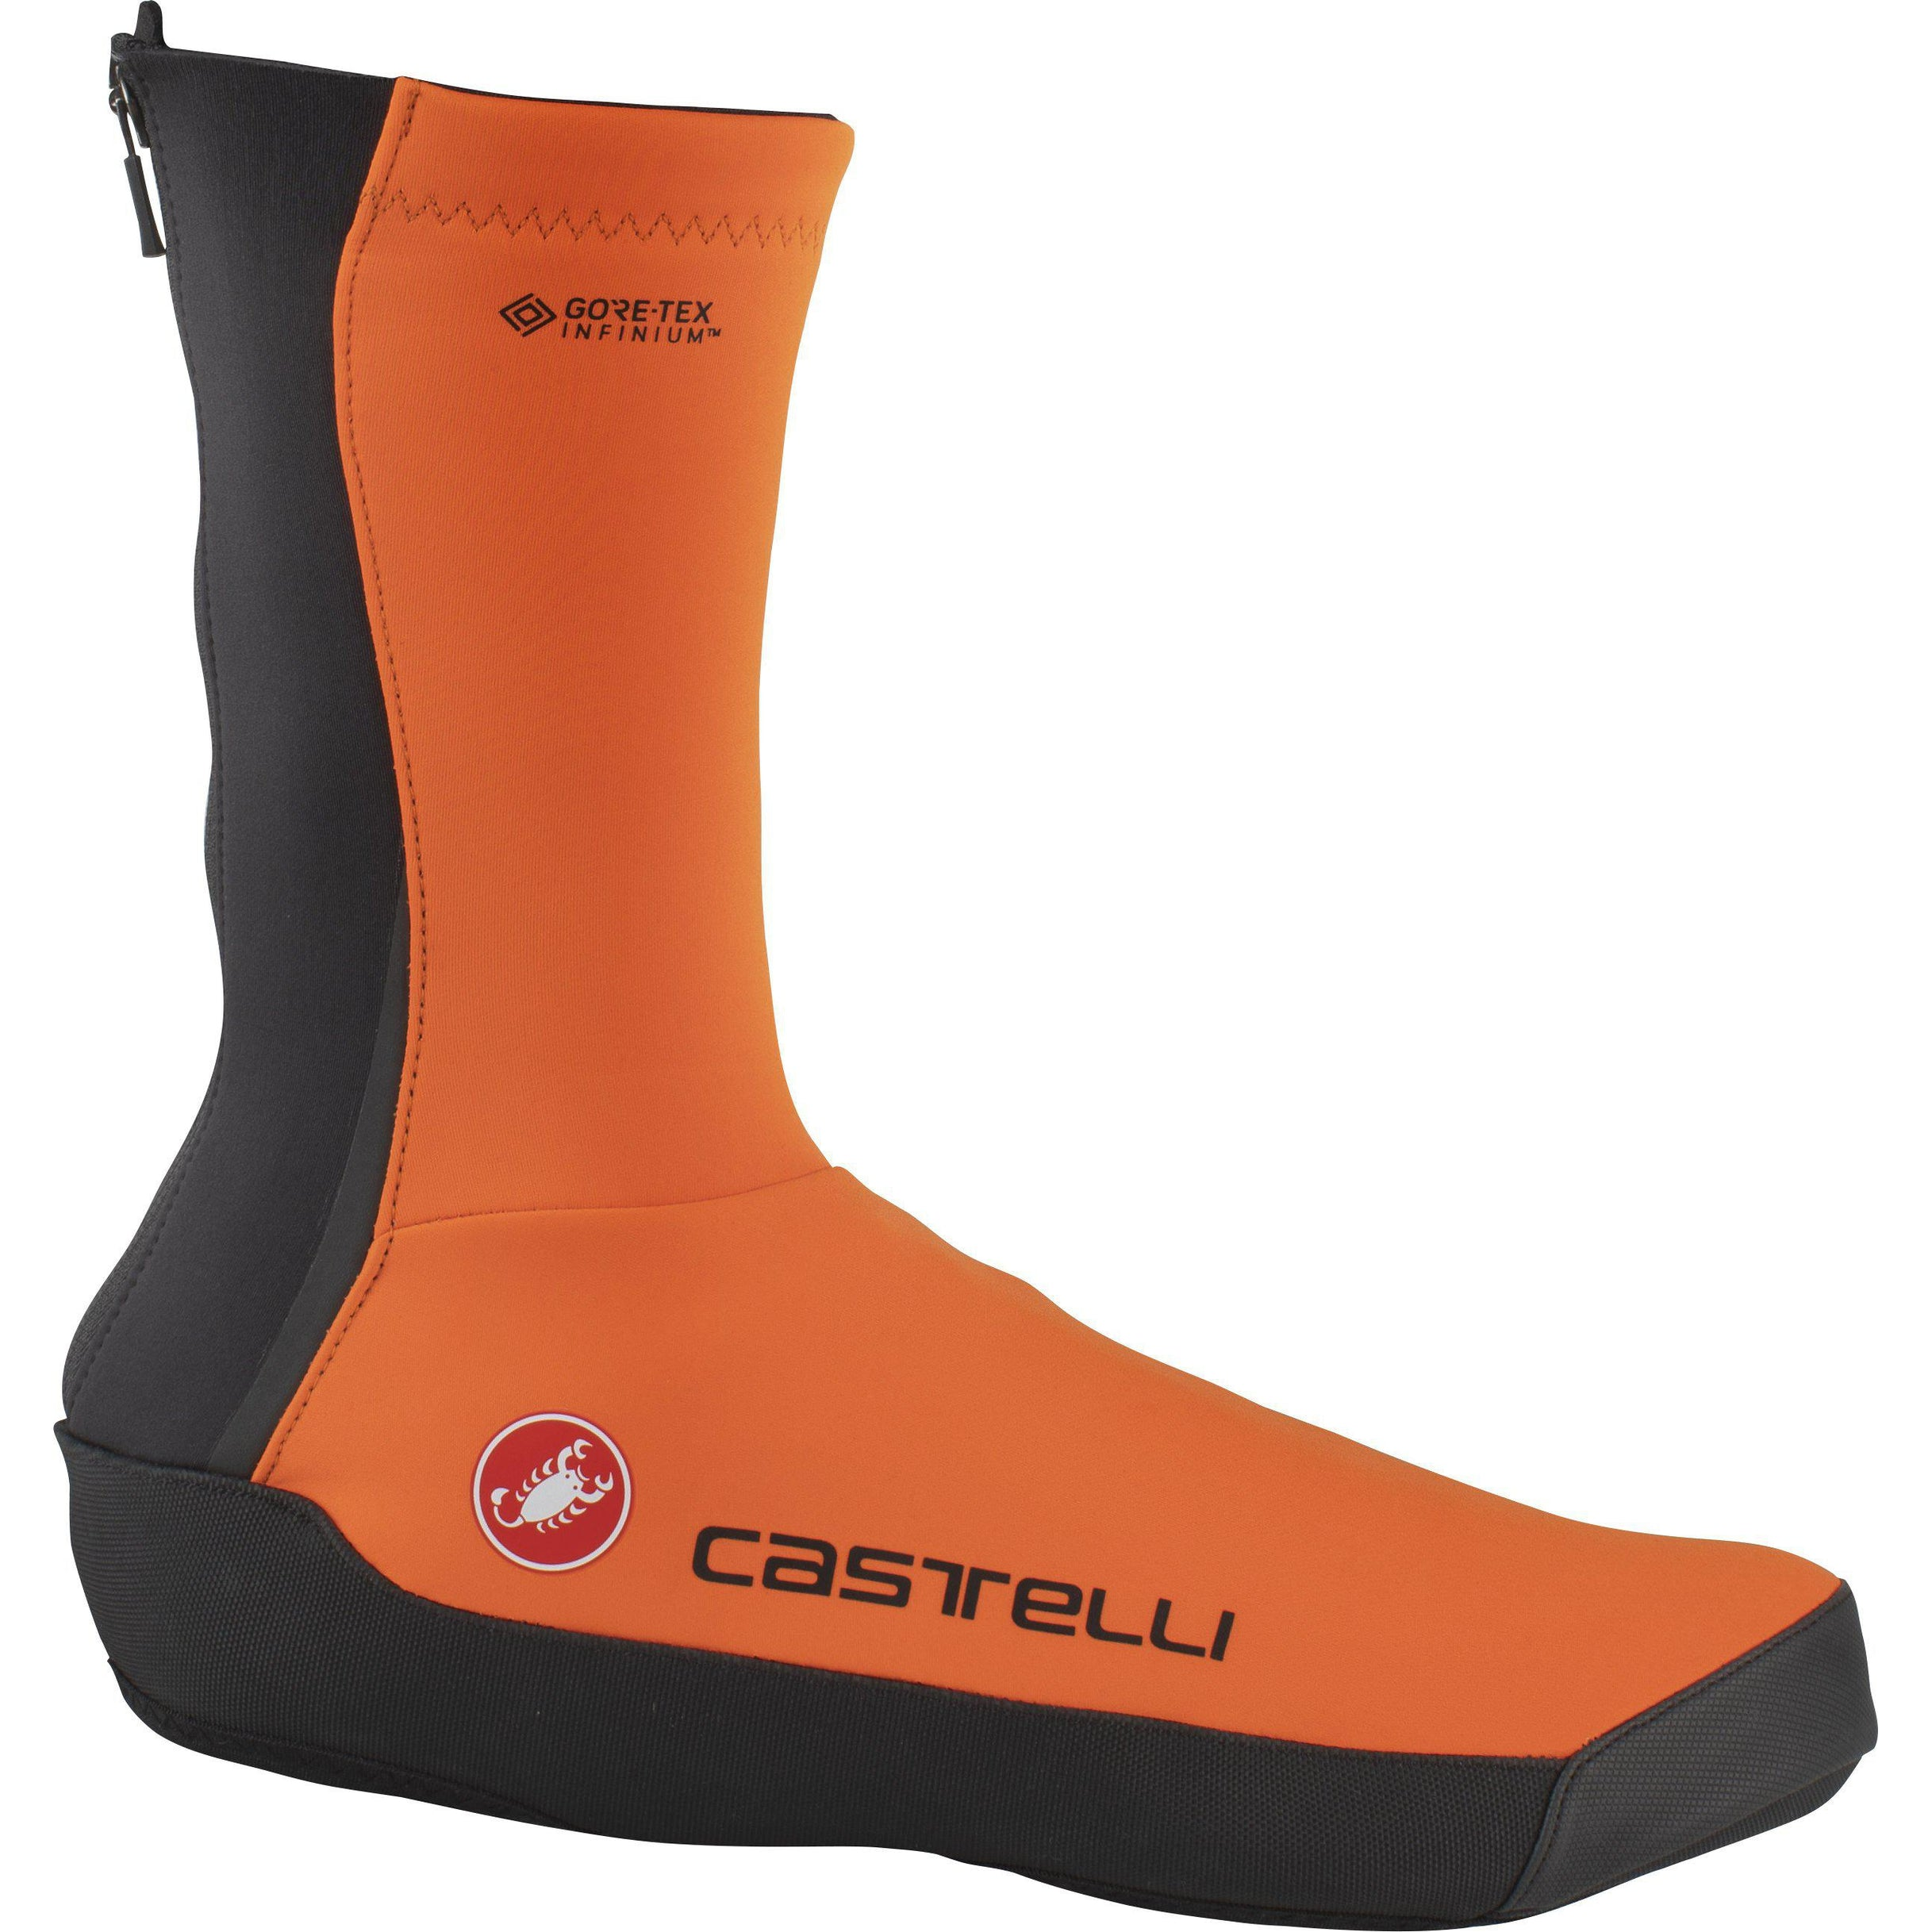 Castelli-Castelli Intenso UL Shoecover-Orange-S-CS205380342-saddleback-elite-performance-cycling